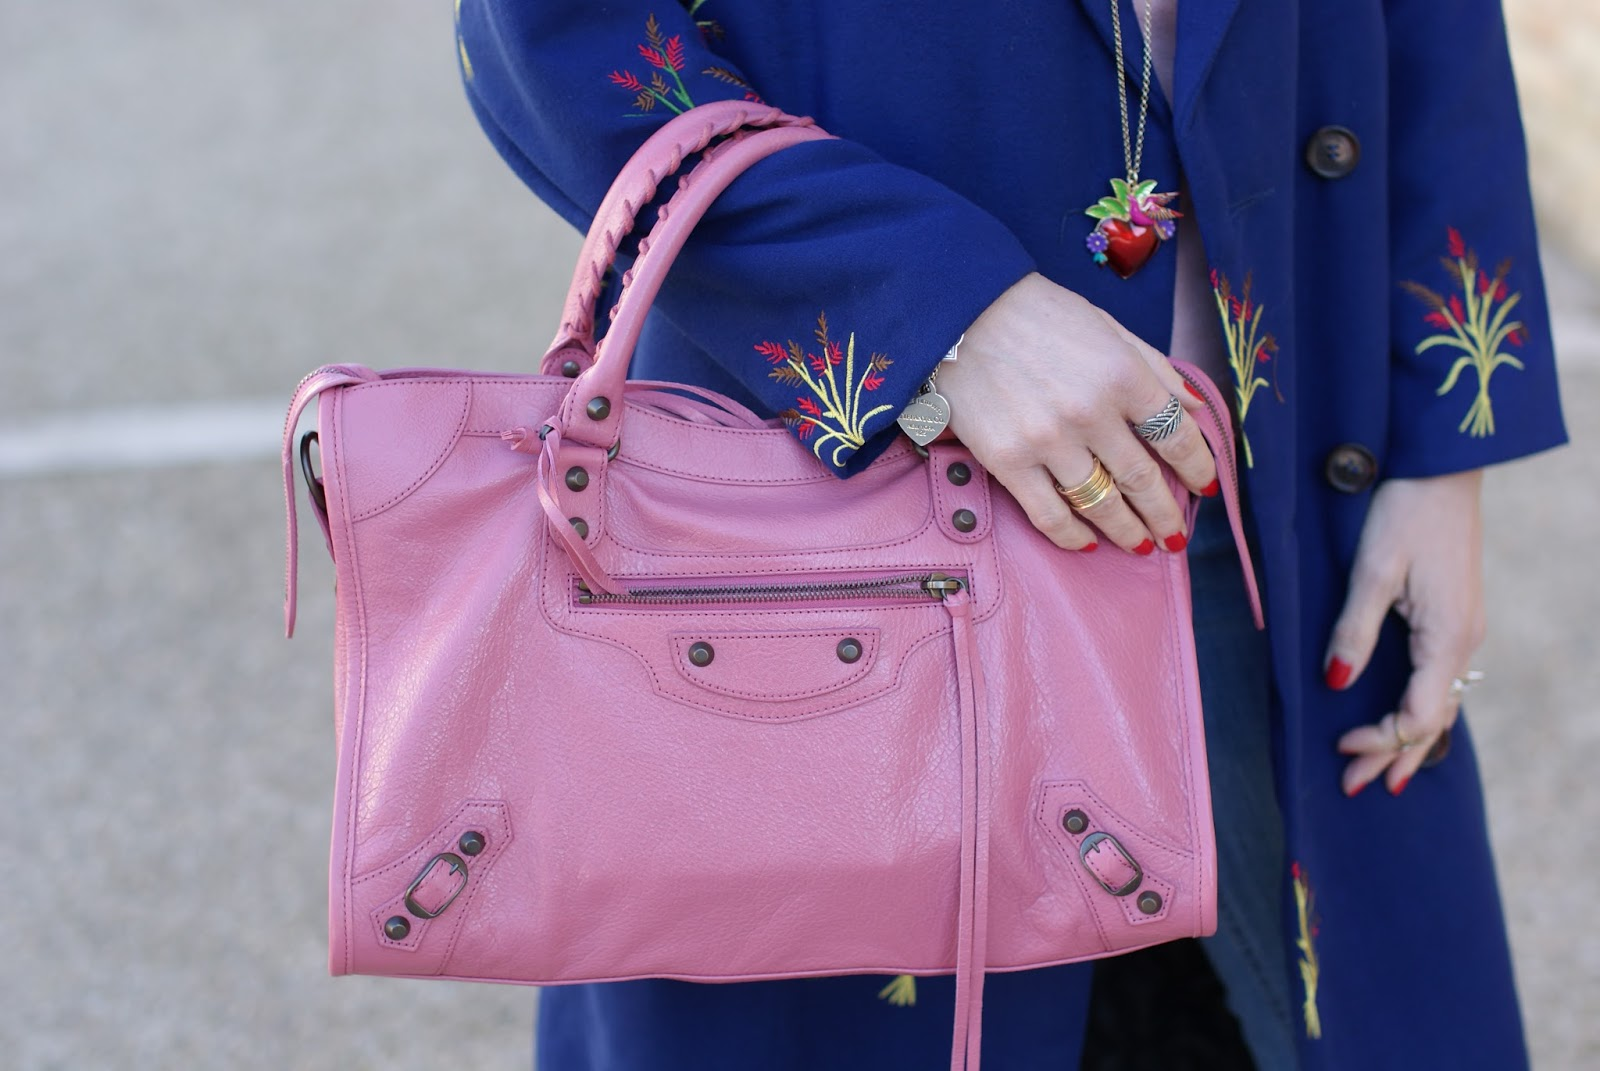 Tommaso Lonardo necklace and Balenciaga City bag in rose hortensia on Fashion and Cookies fashion blog, fashion blogger style